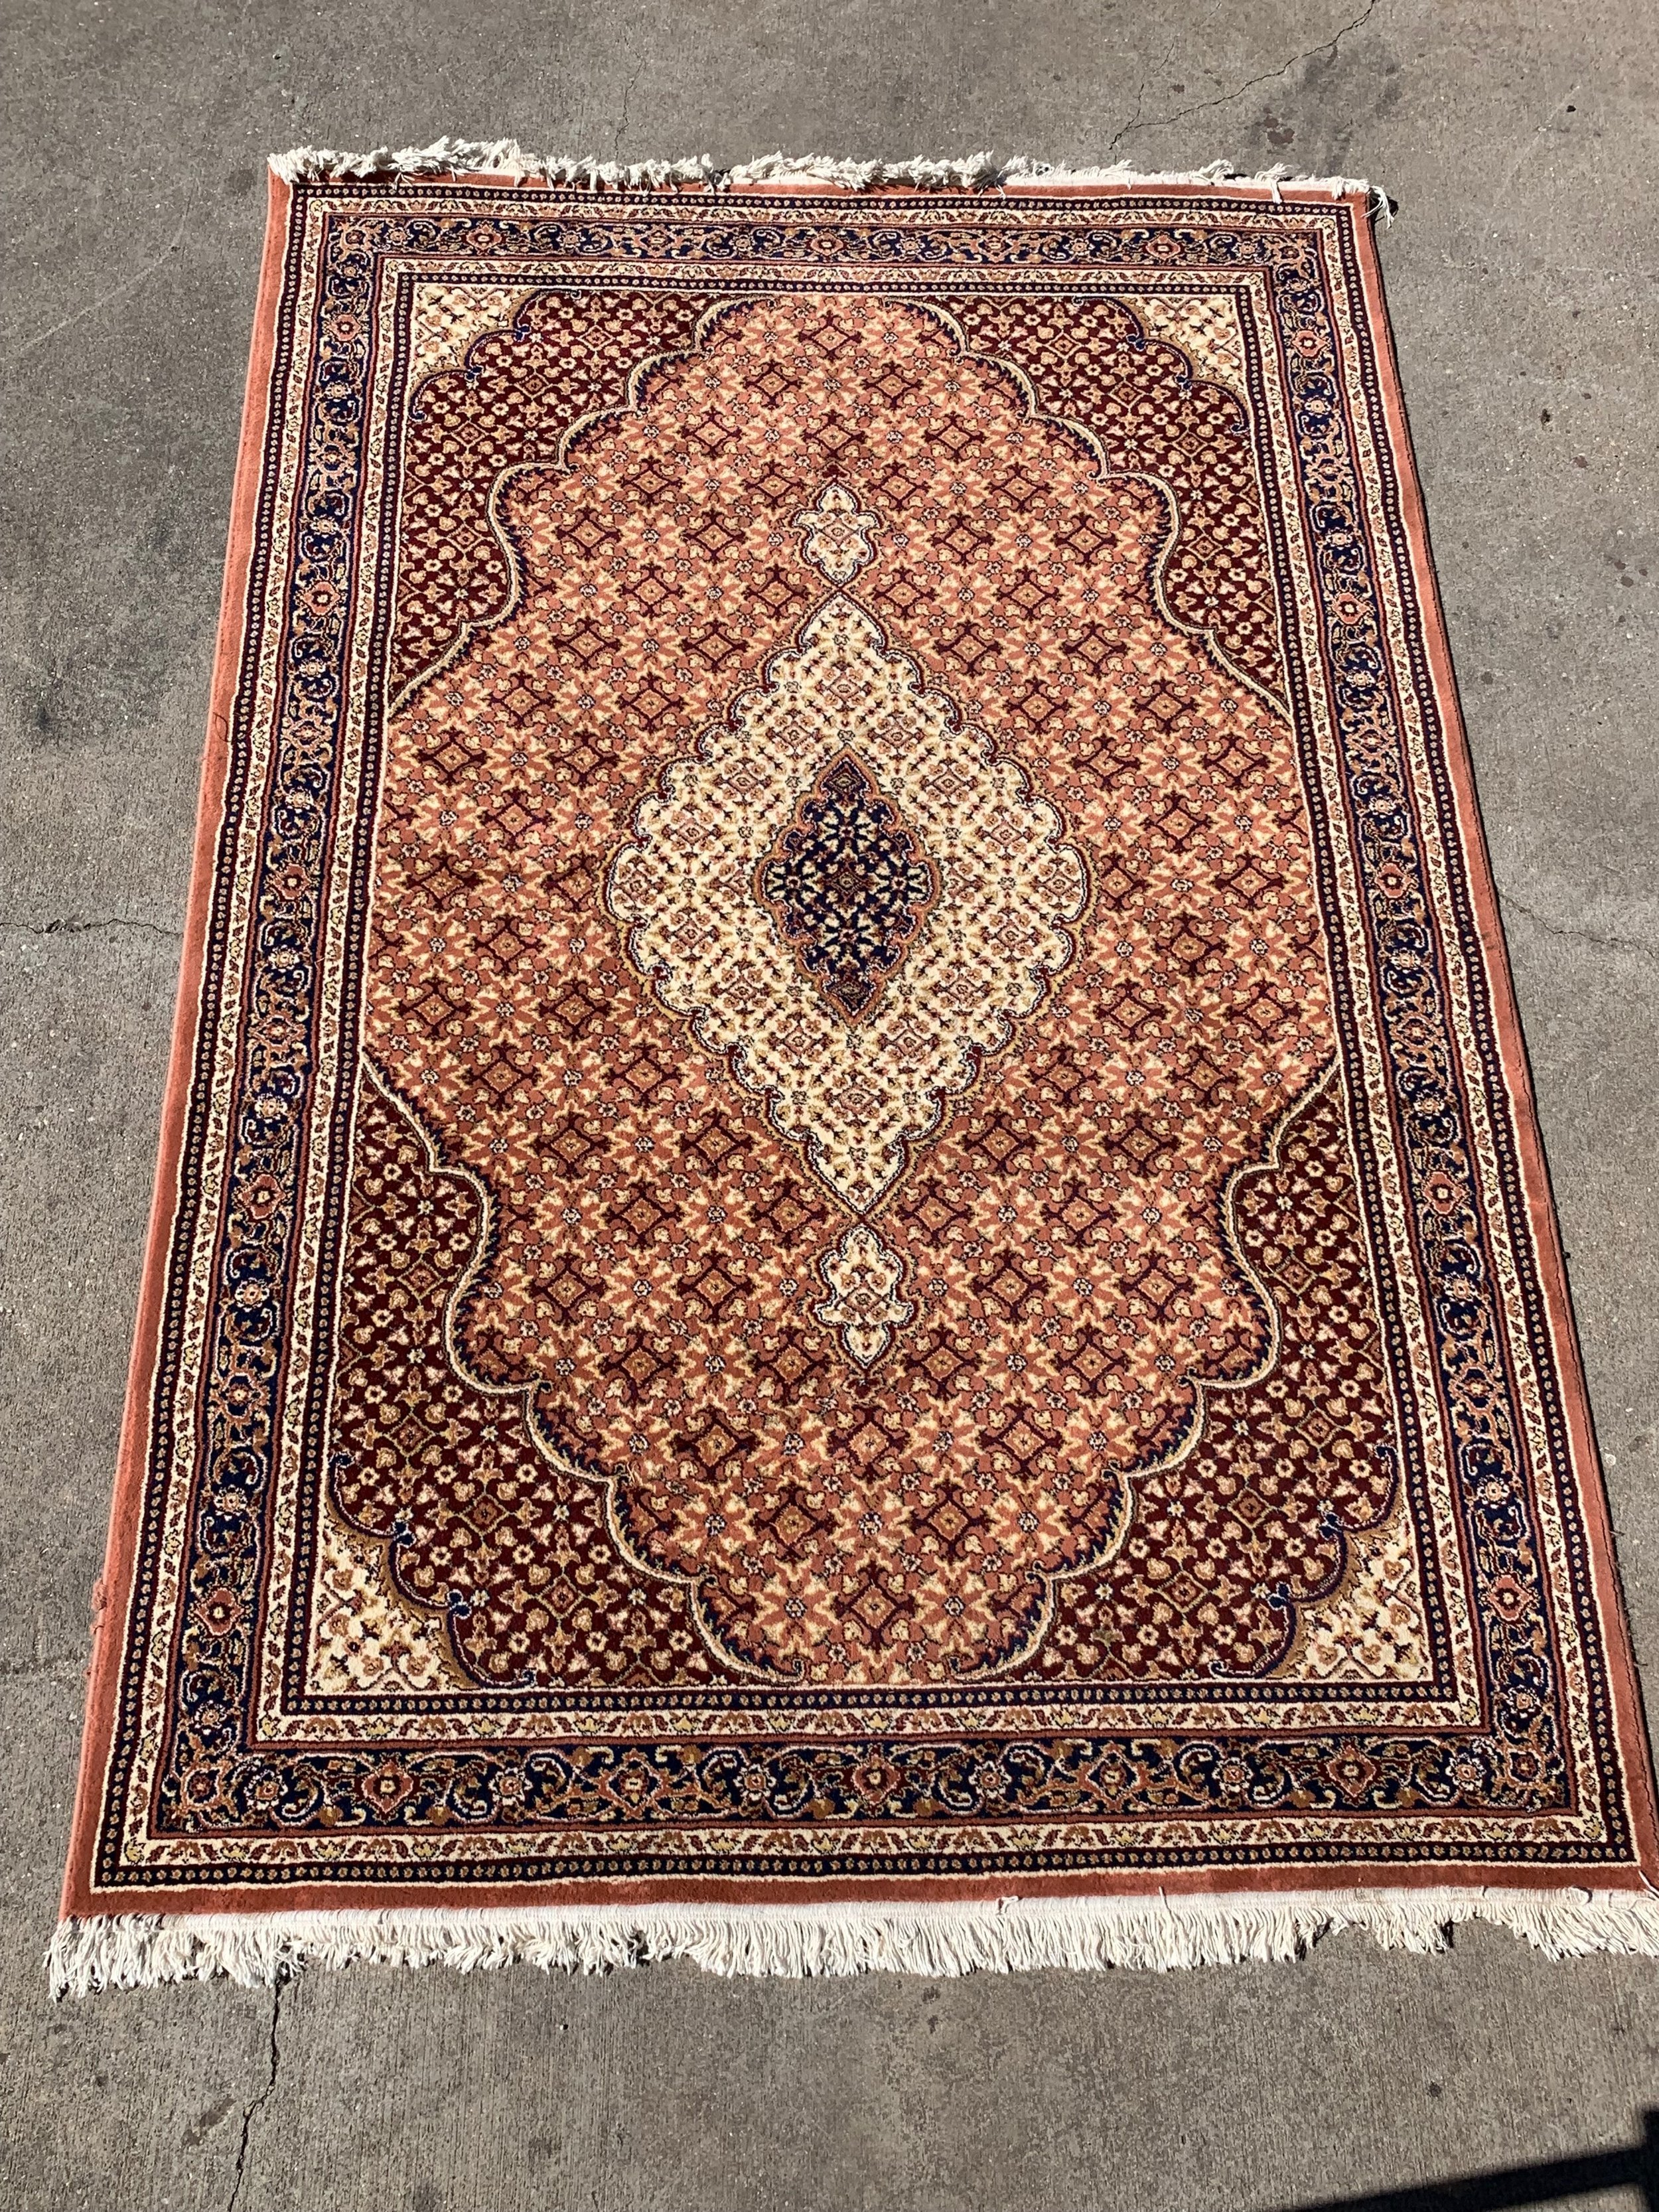 PINK AND CREAM FLORAL RUG.JPG